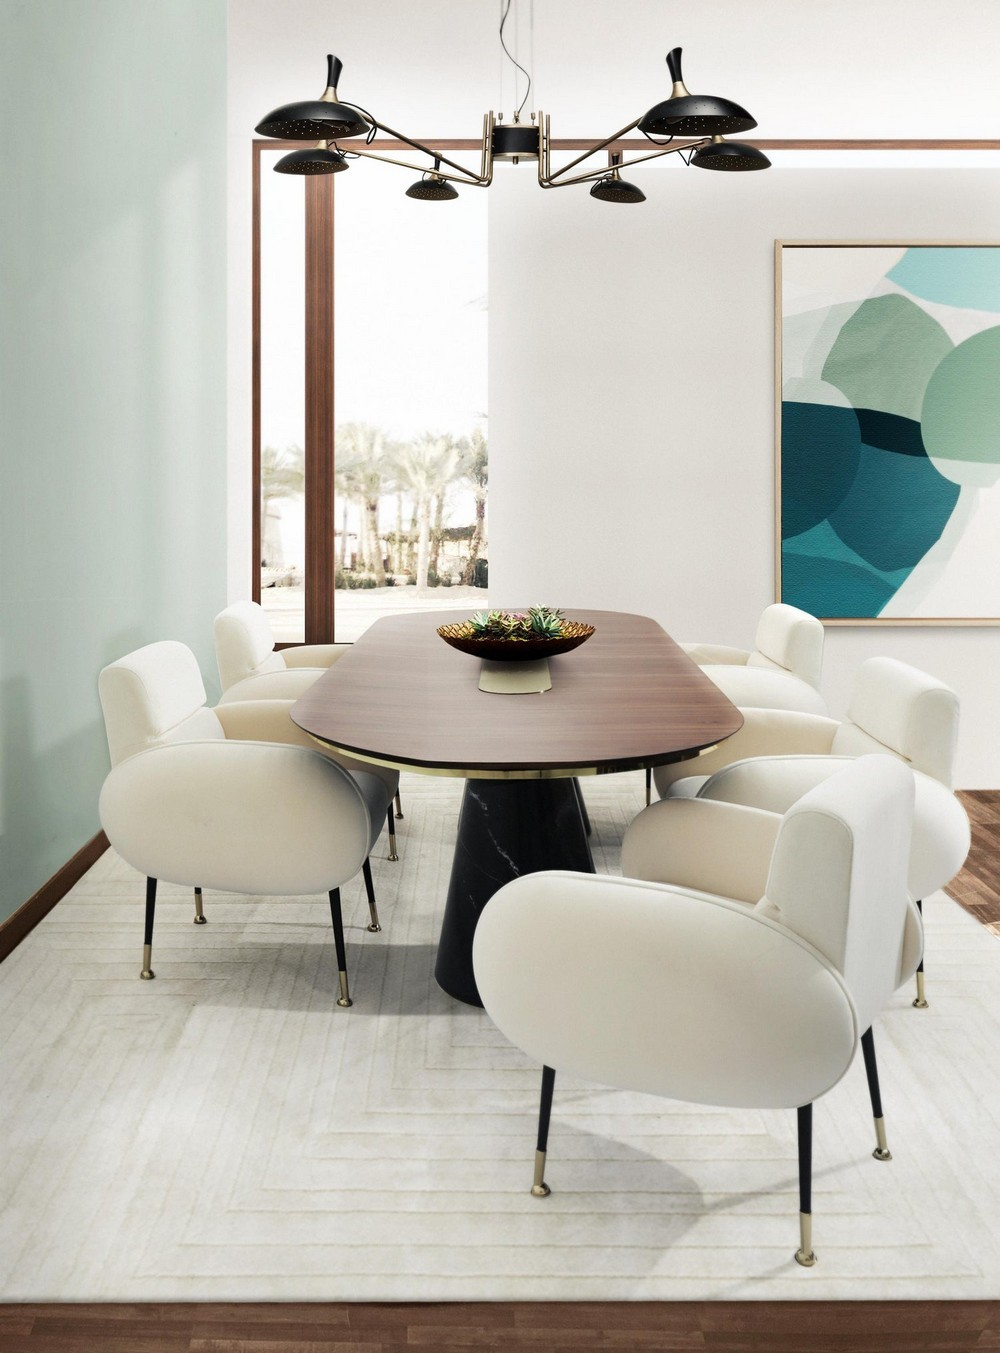 Winter Trends: Modern Dining Tables For Modern Dining Rooms modern dining tables Winter Trends: Modern Dining Tables For Modern Dining Rooms bertoia2